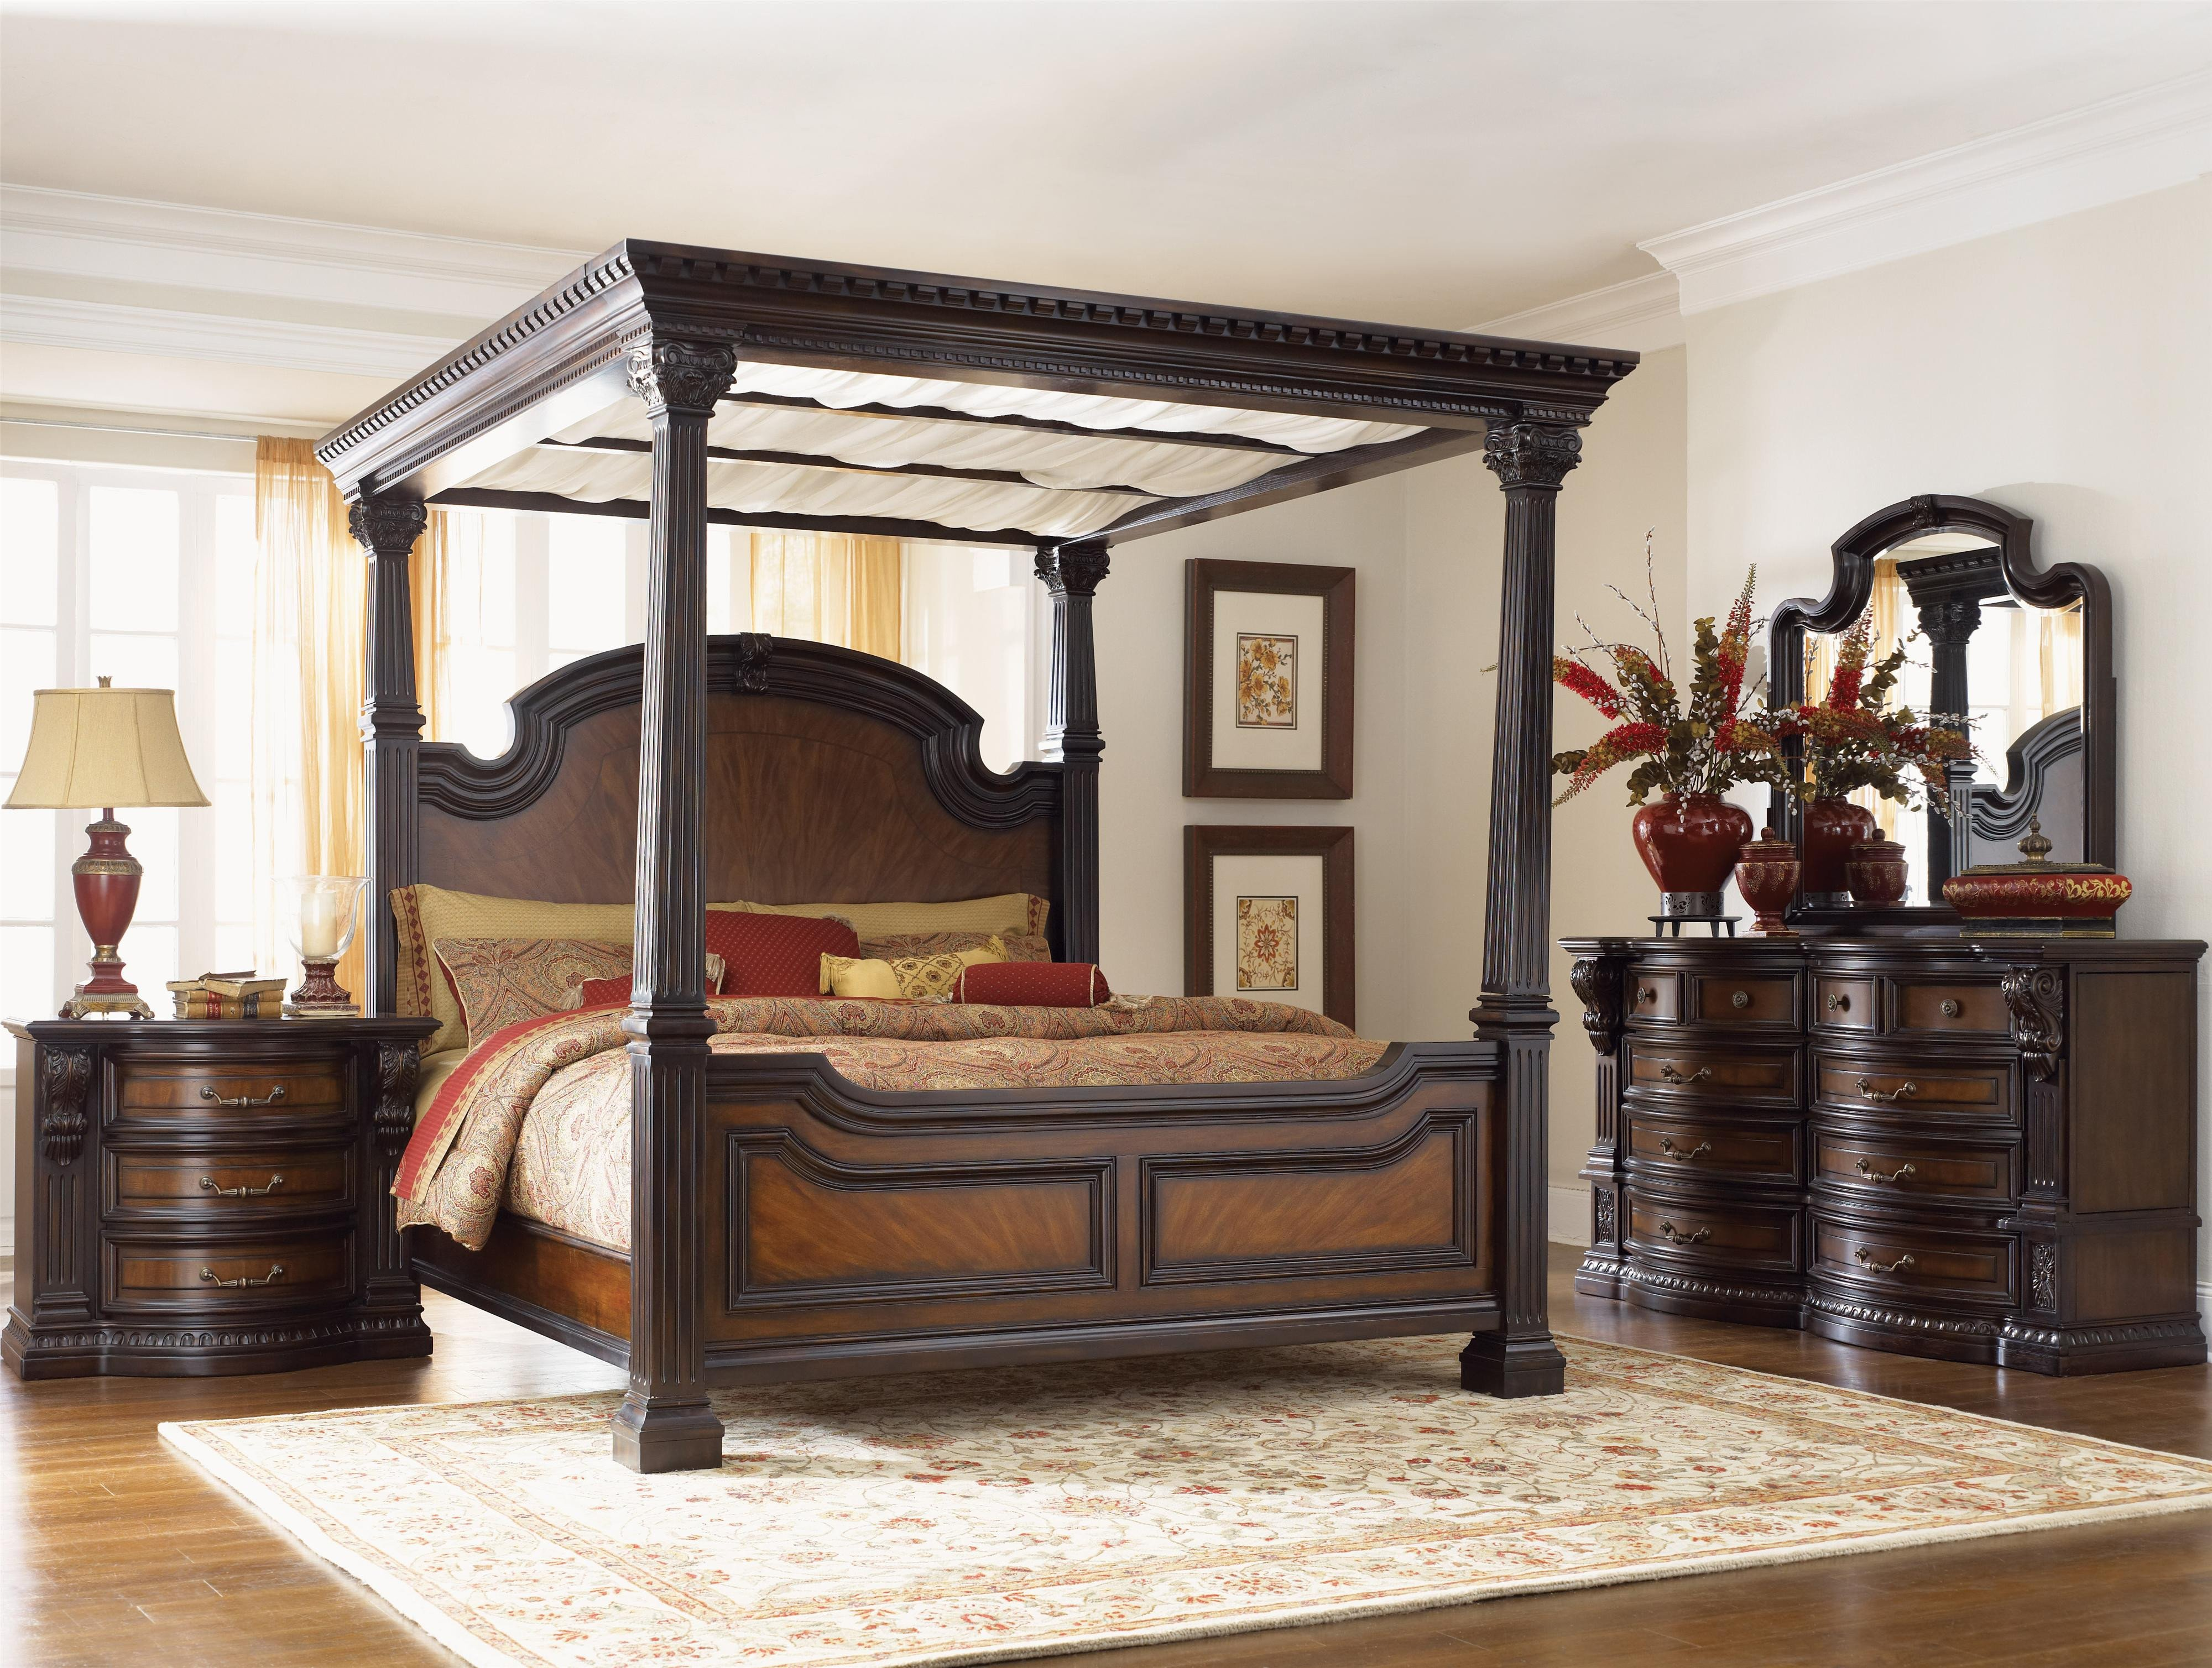 King Size Poster Bedroom Set Beautiful Grand Estates 02 by Fairmont Designs Royal Furniture